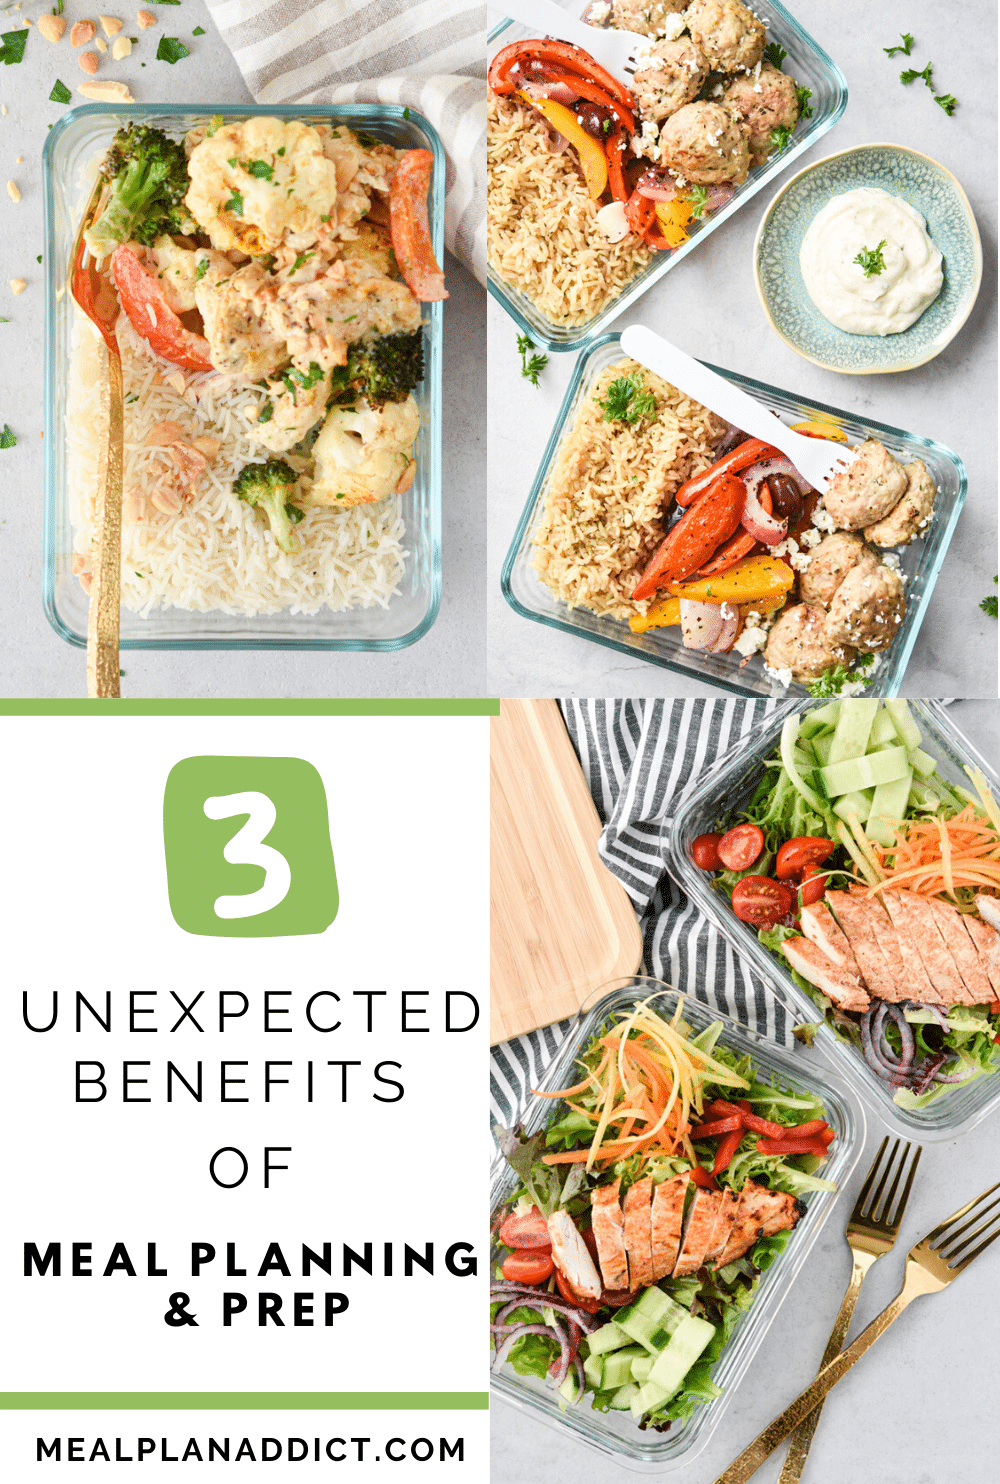 3 unexpected benefits of meal planning and prep collage with 3 flatlay meal prep photos